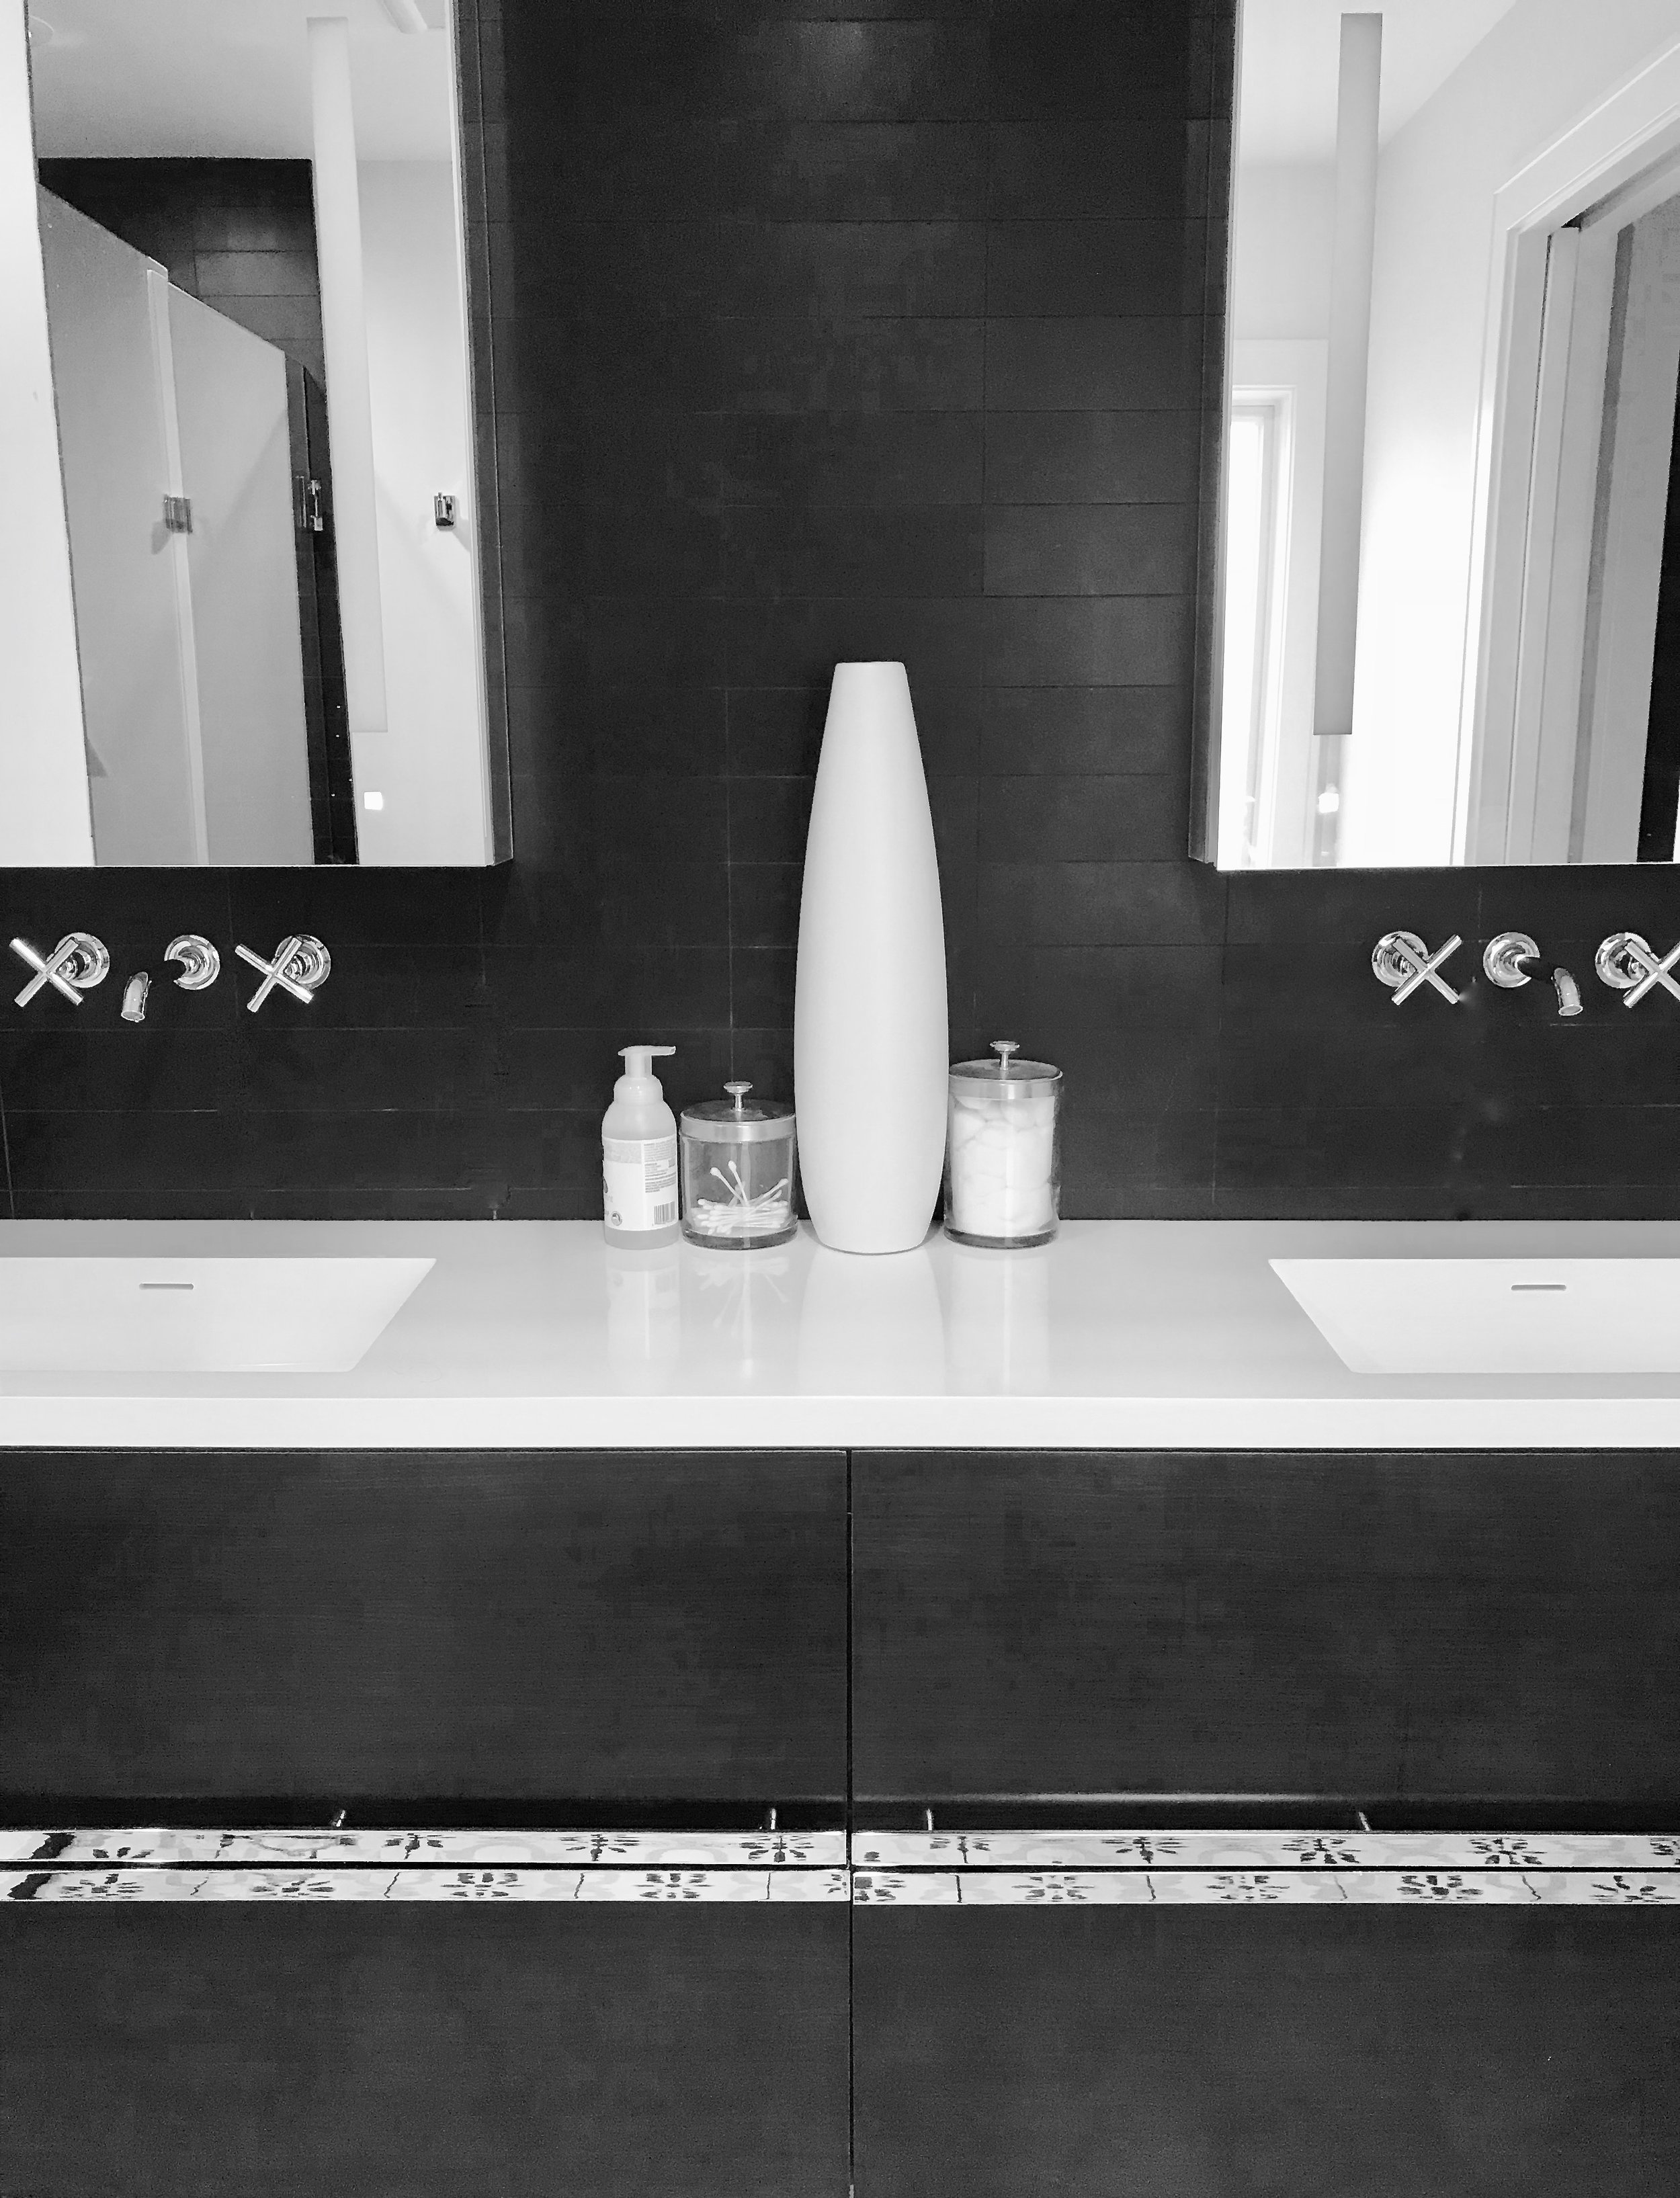 We recently renovated a home with a two-story addition and modern master bathroom. It features a Madeli floating vanity, Robern medicine cabinets, and black basalt tile on the wet wall.